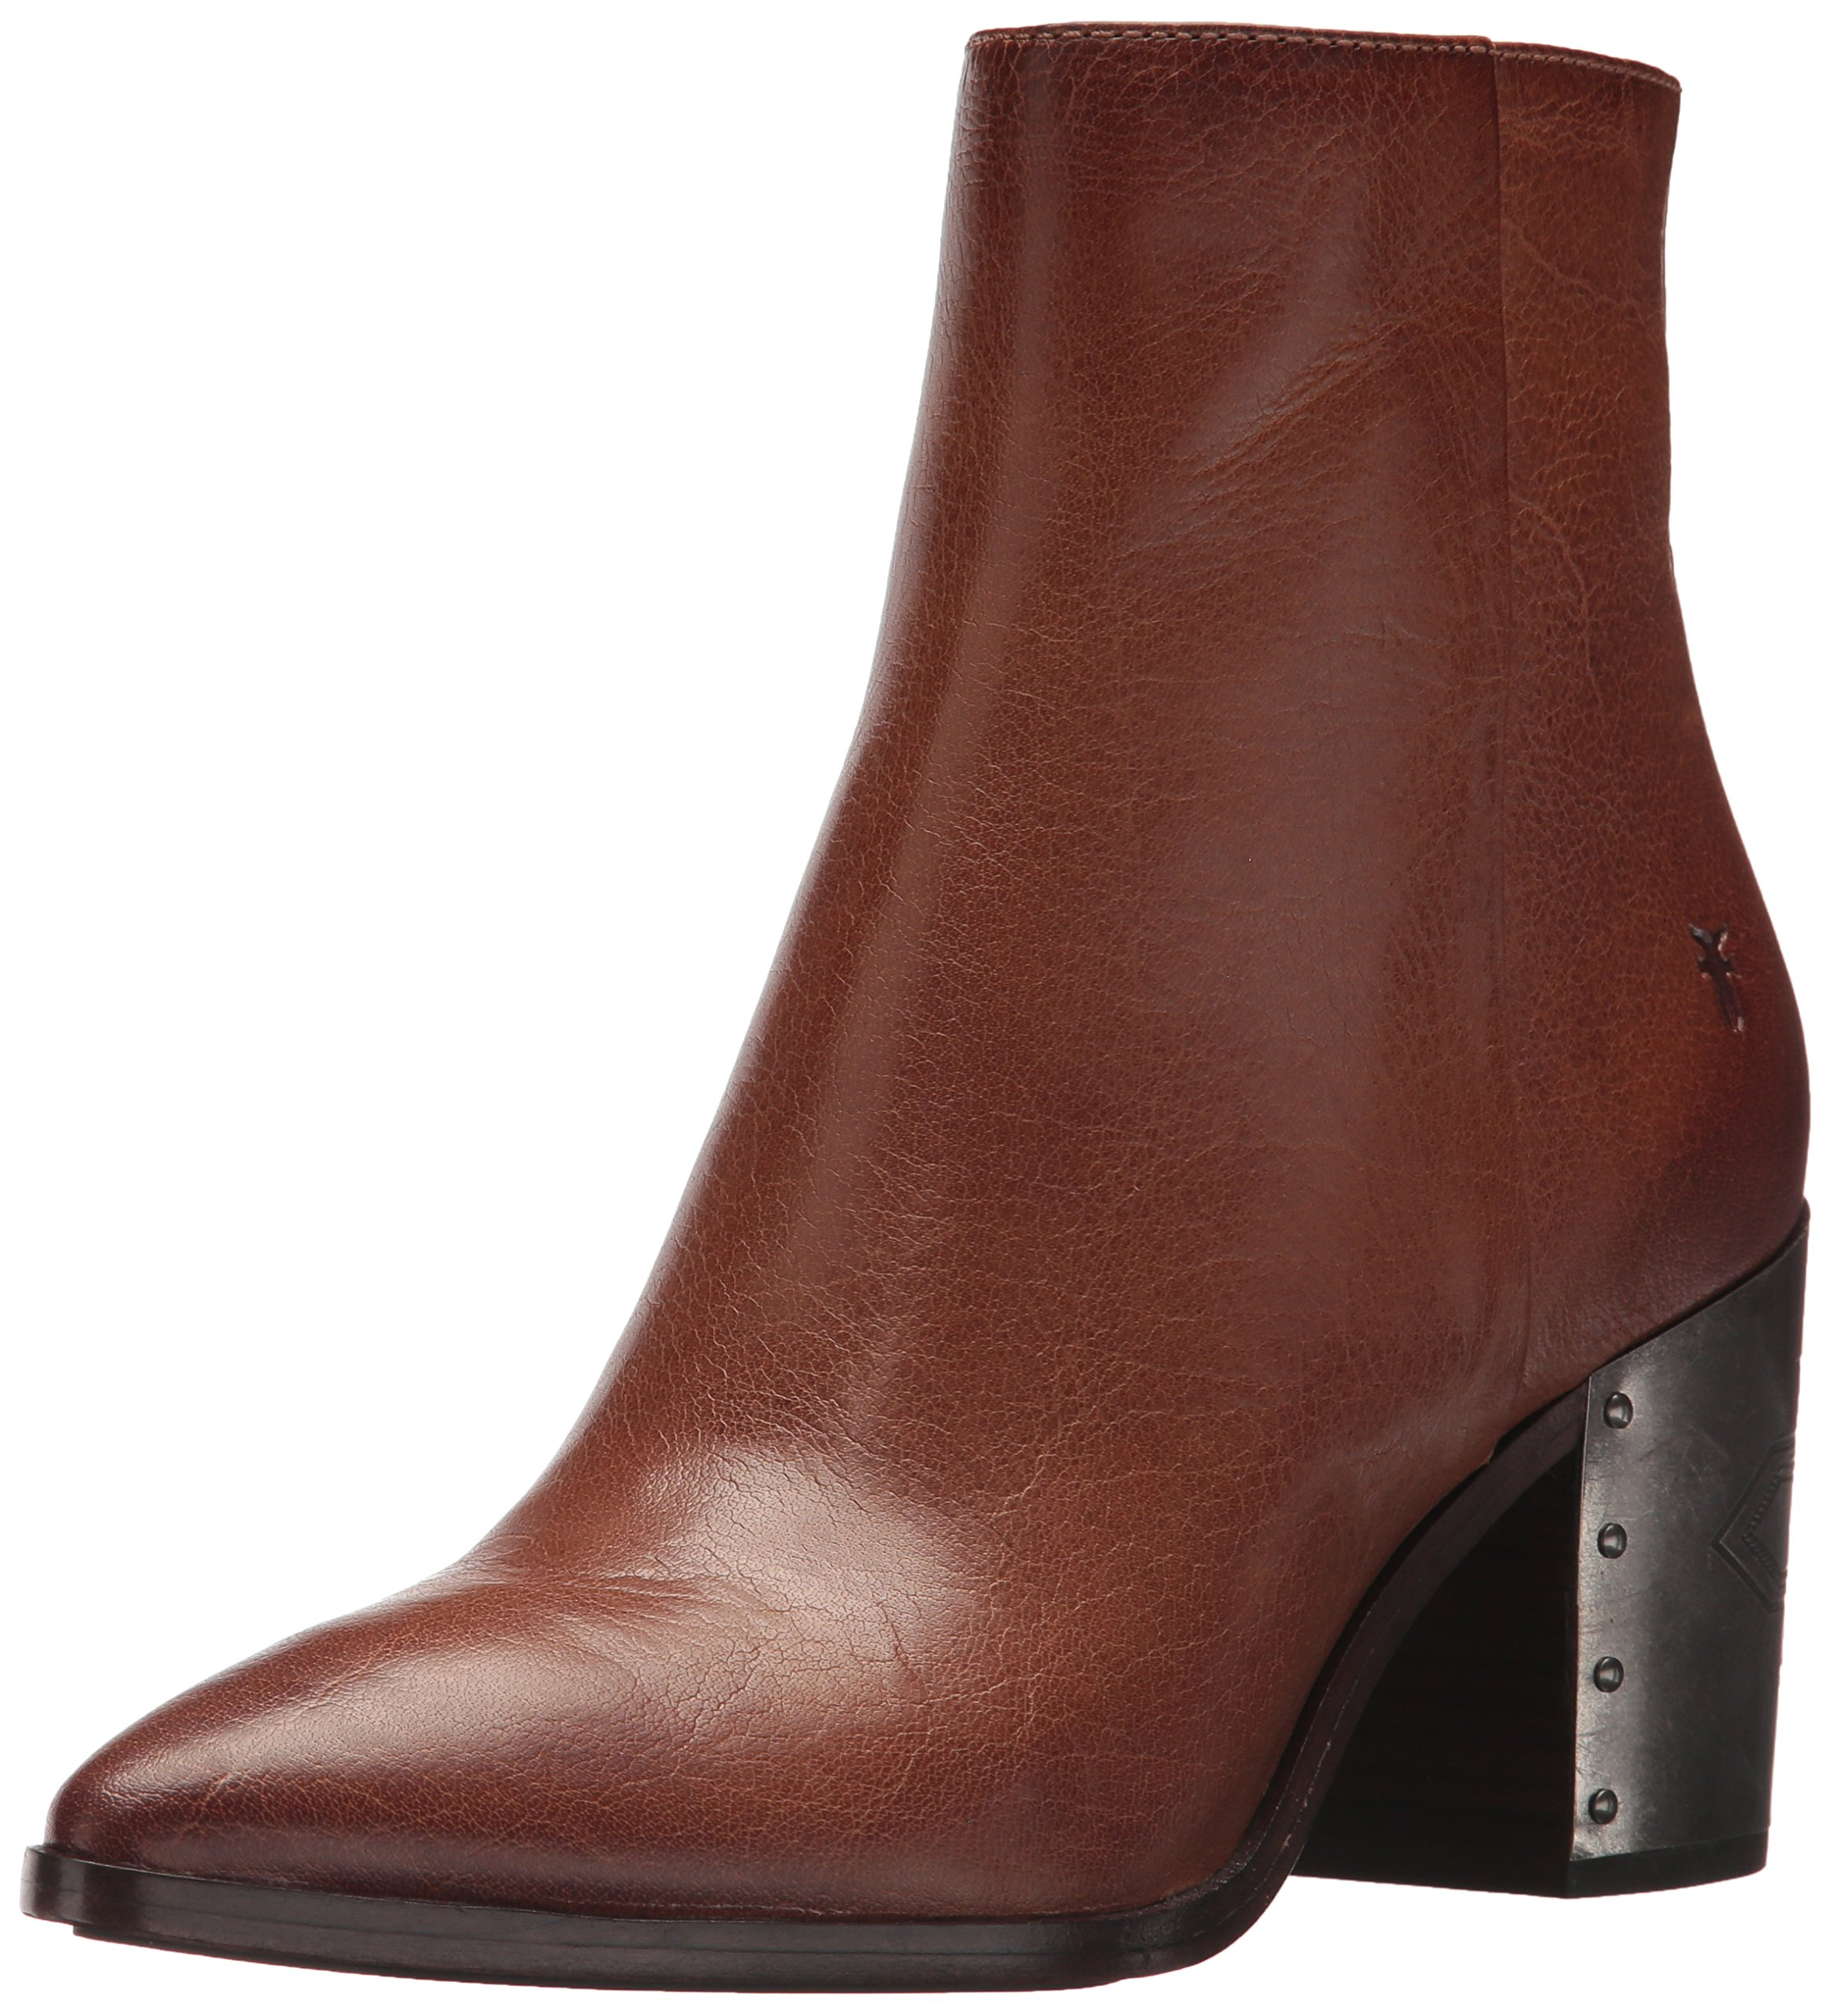 FRYE Women's Flynn Omaja Short Inside Zip Ankle Boot, Cognac, 8 M US